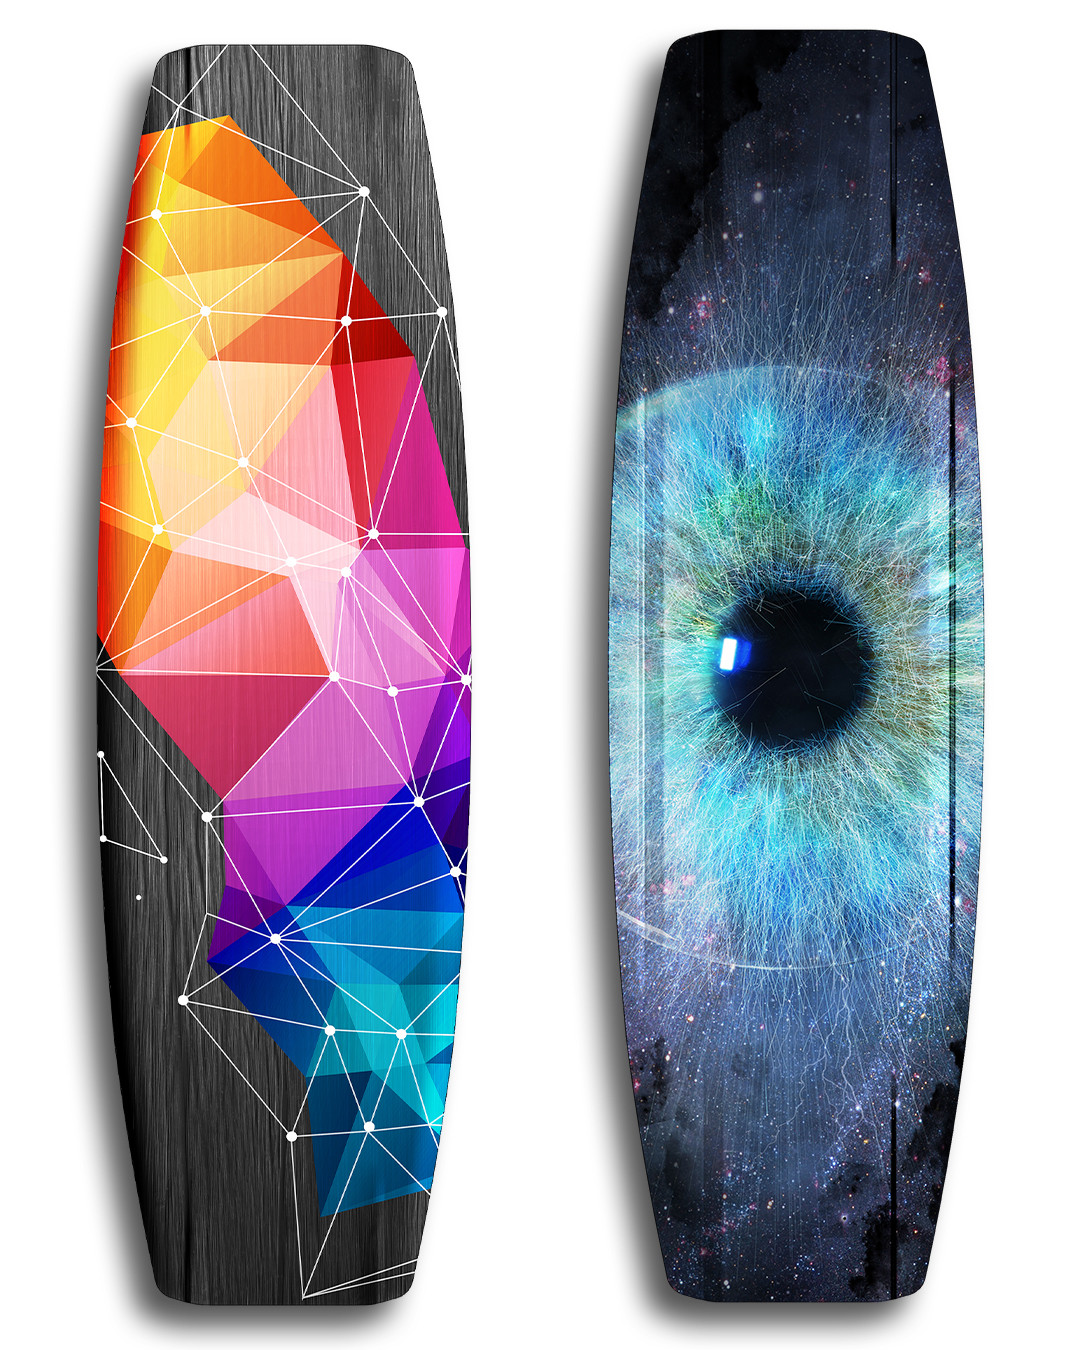 Slider wakeboard - Vivid custom graphics - Wood core - Triaxial fiberglass construction